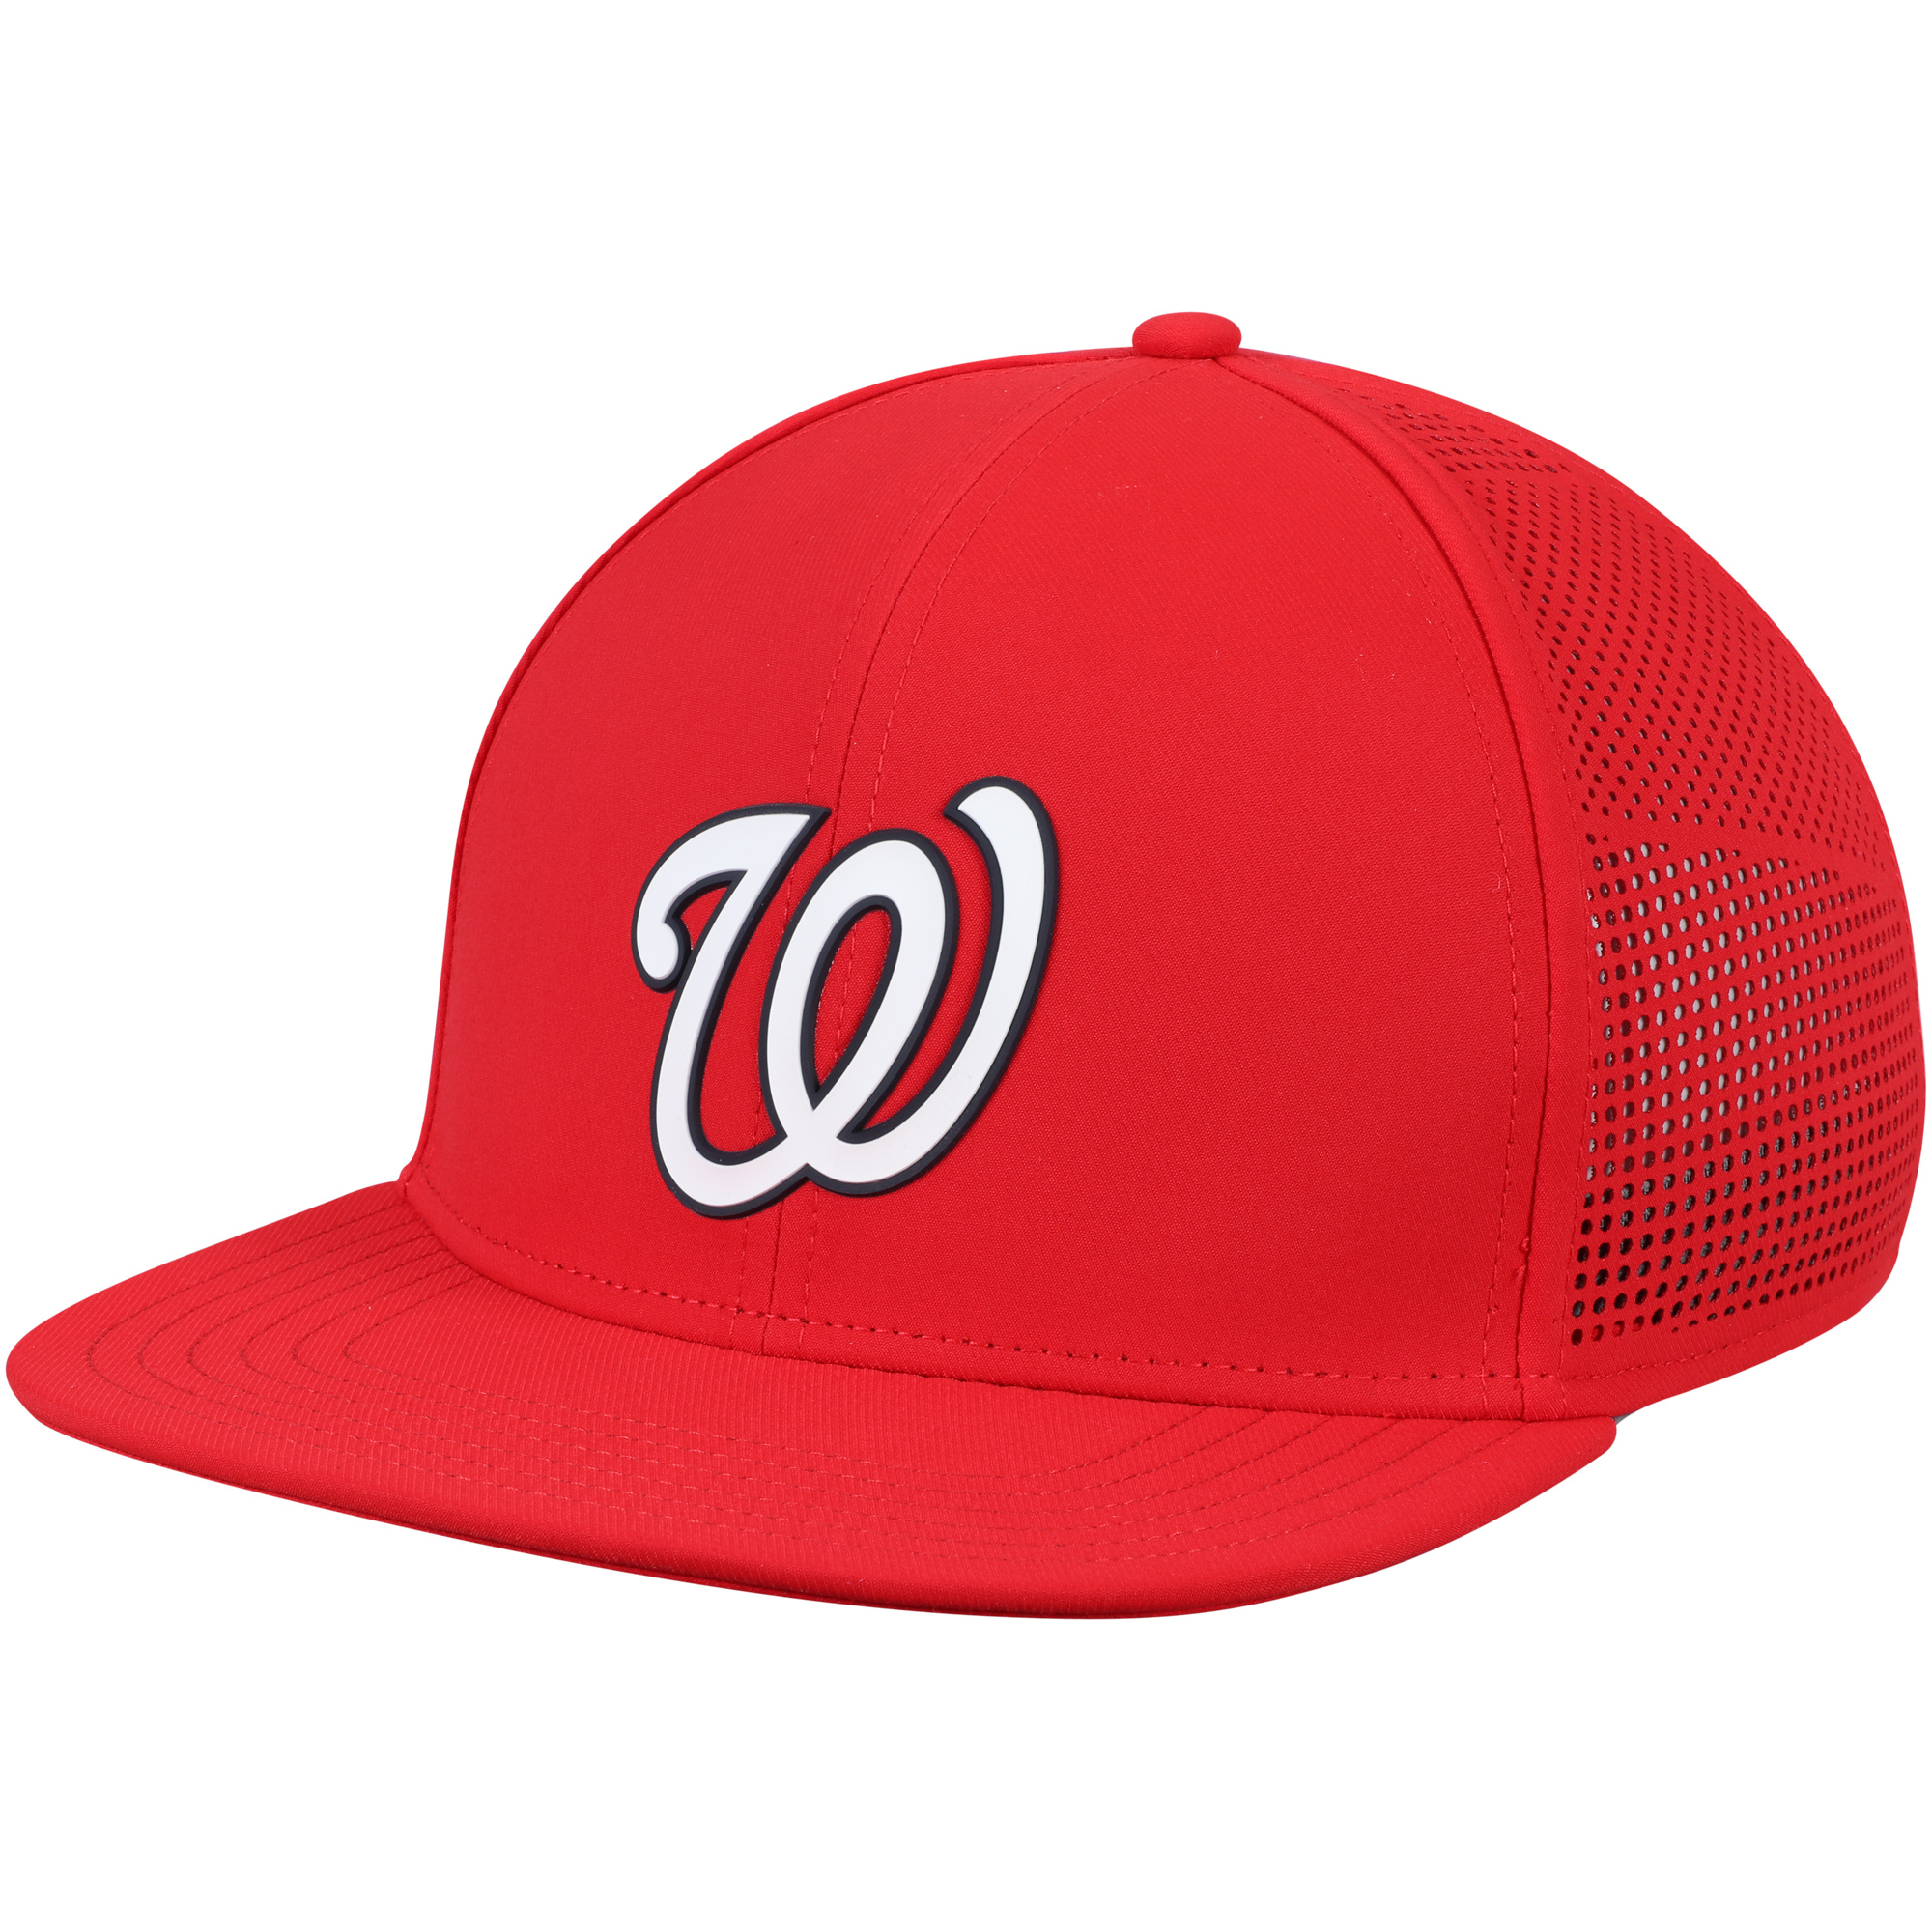 Washington Nationals Under Armour Supervent Snapback Adjustable Hat - Red - OSFA